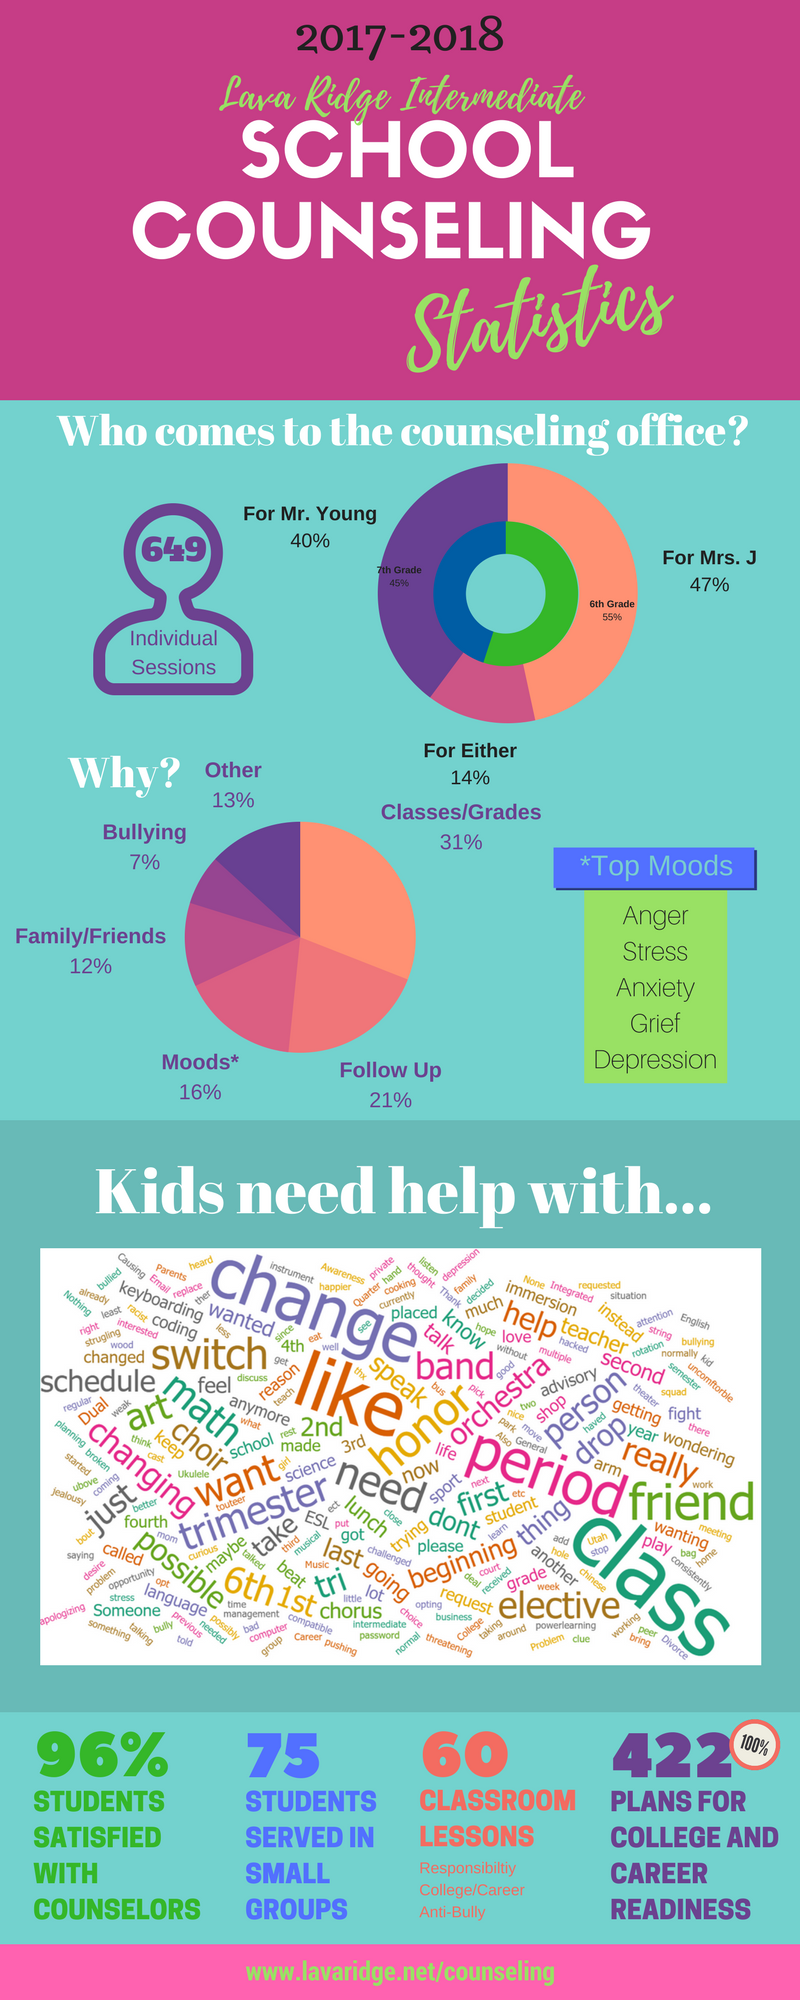 2017-2018 Counseling Stats Infographic